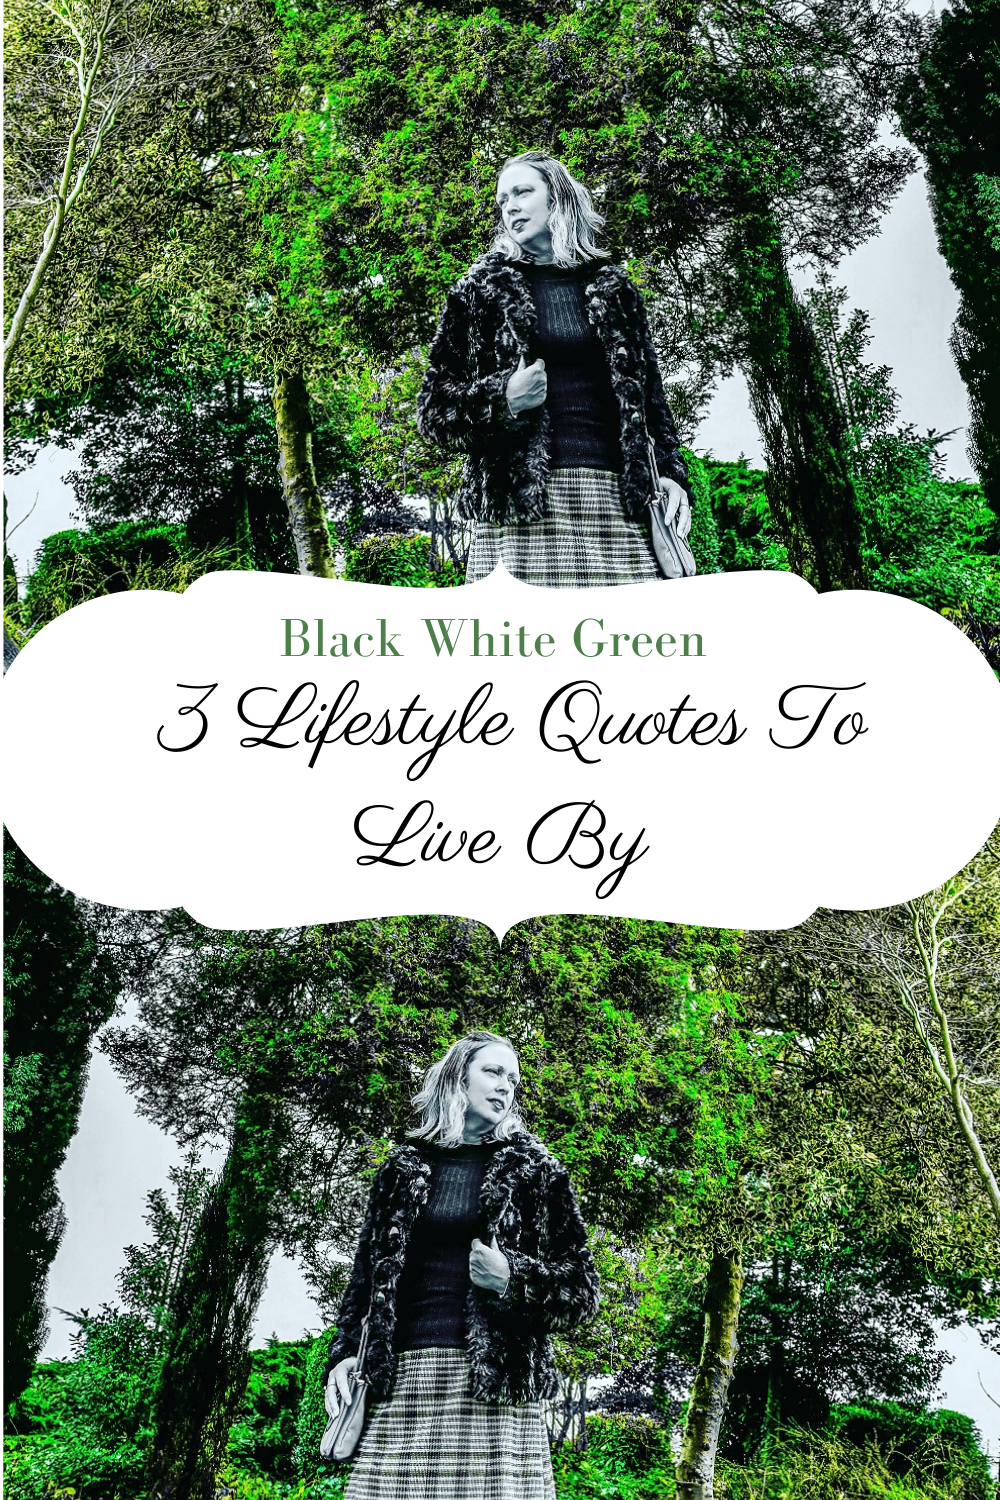 Black White Green & 3 Lifestyle Quotes To Live By